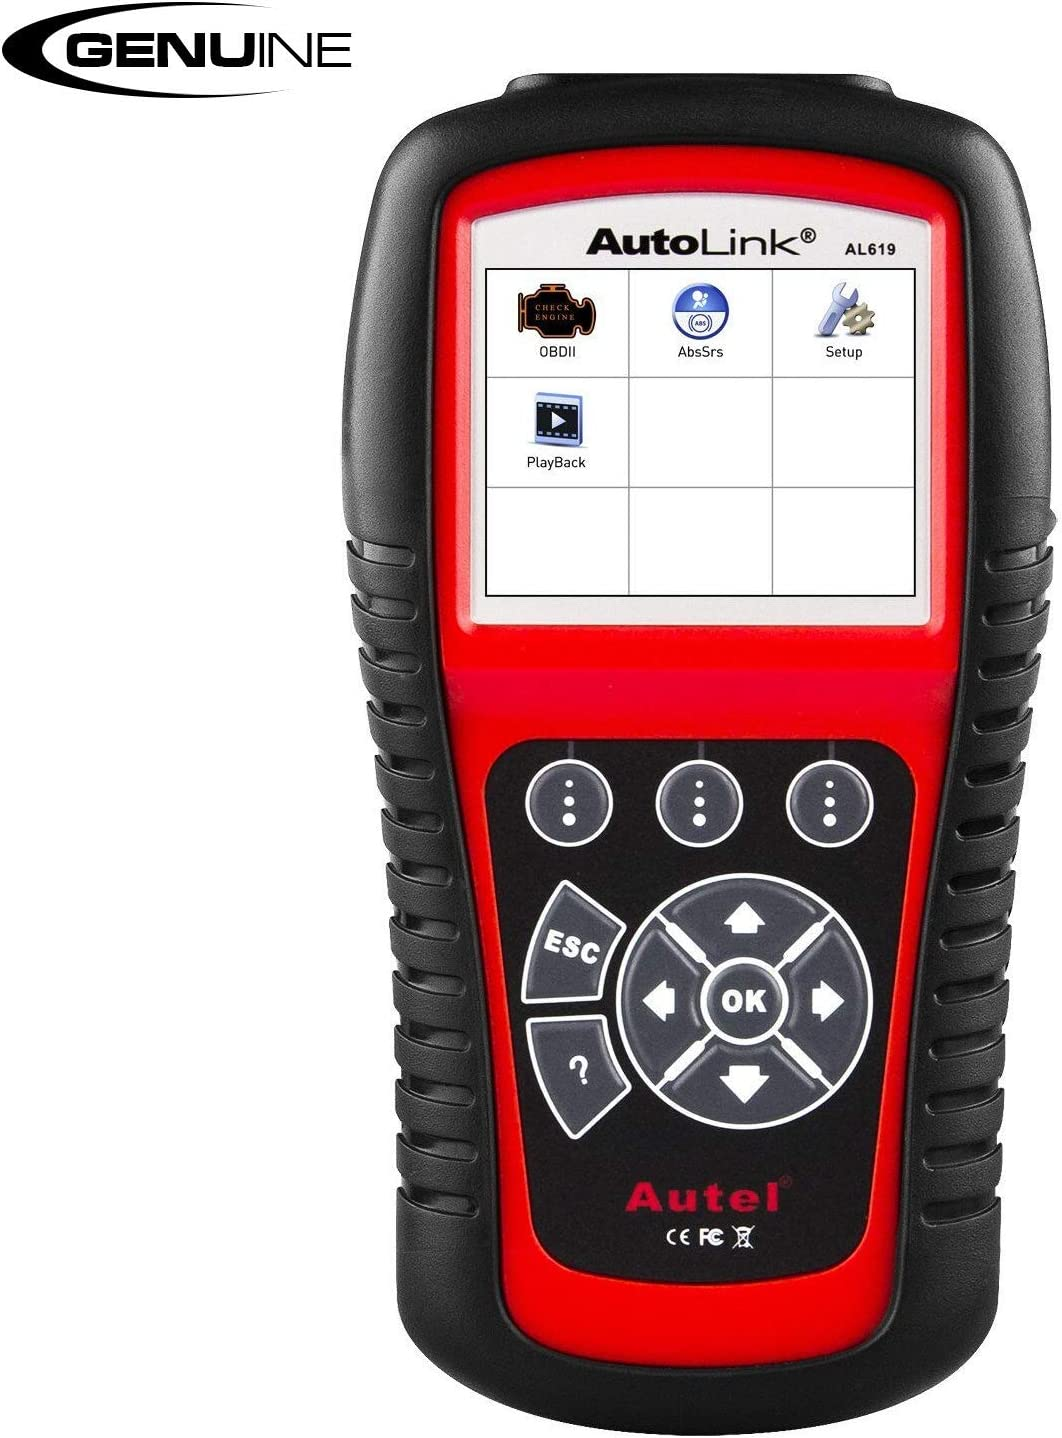 Autel AL619 Autolink Engine/ABS/SRS Auto OBD2 Scanner Car Code Reader Automotive Diagnostic Tool